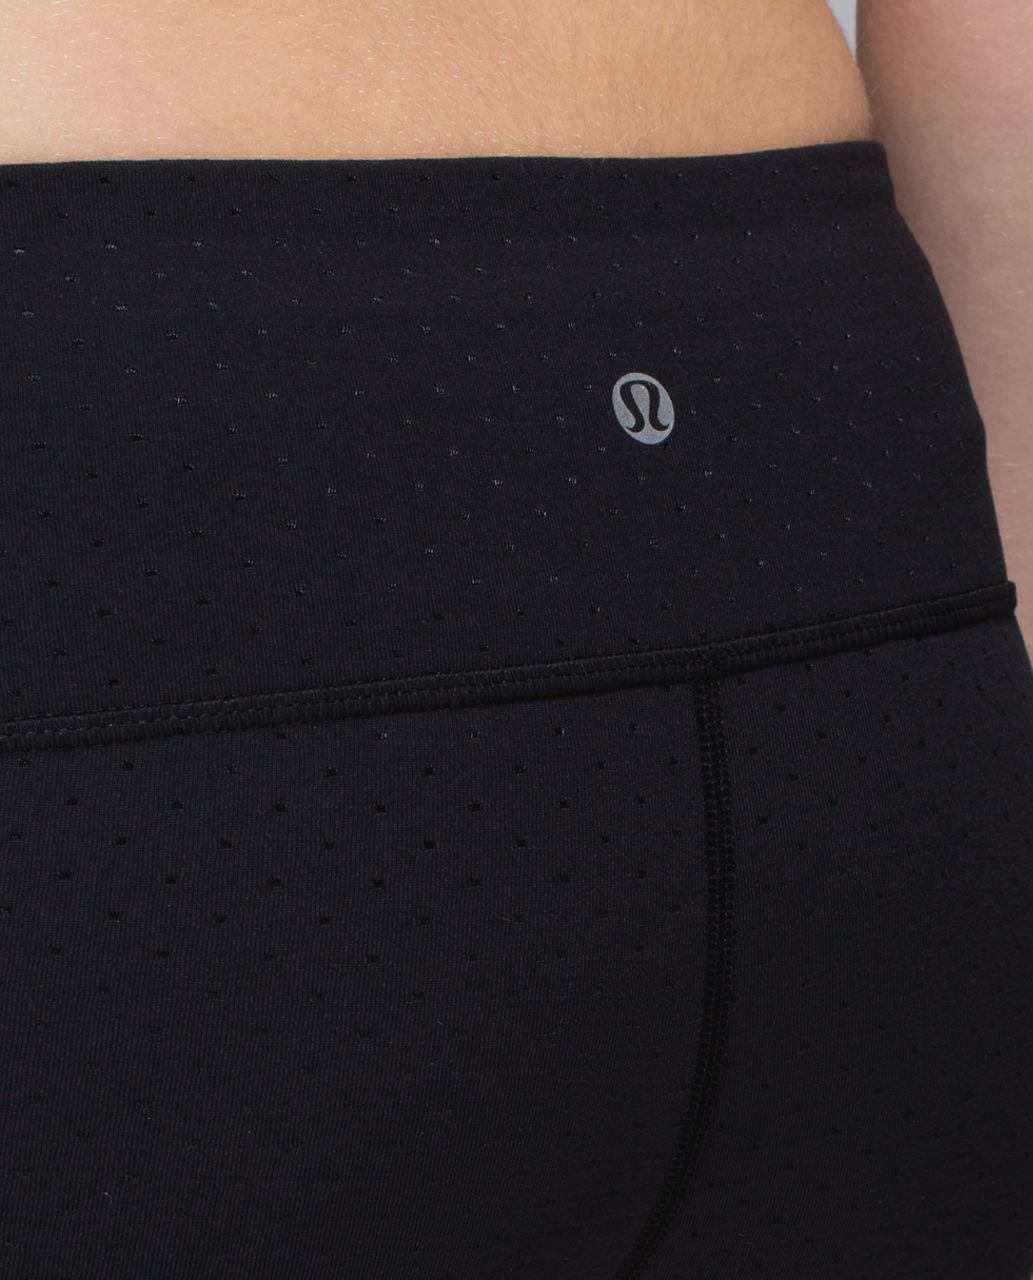 Lululemon Boogie Short - Shine Dot Black